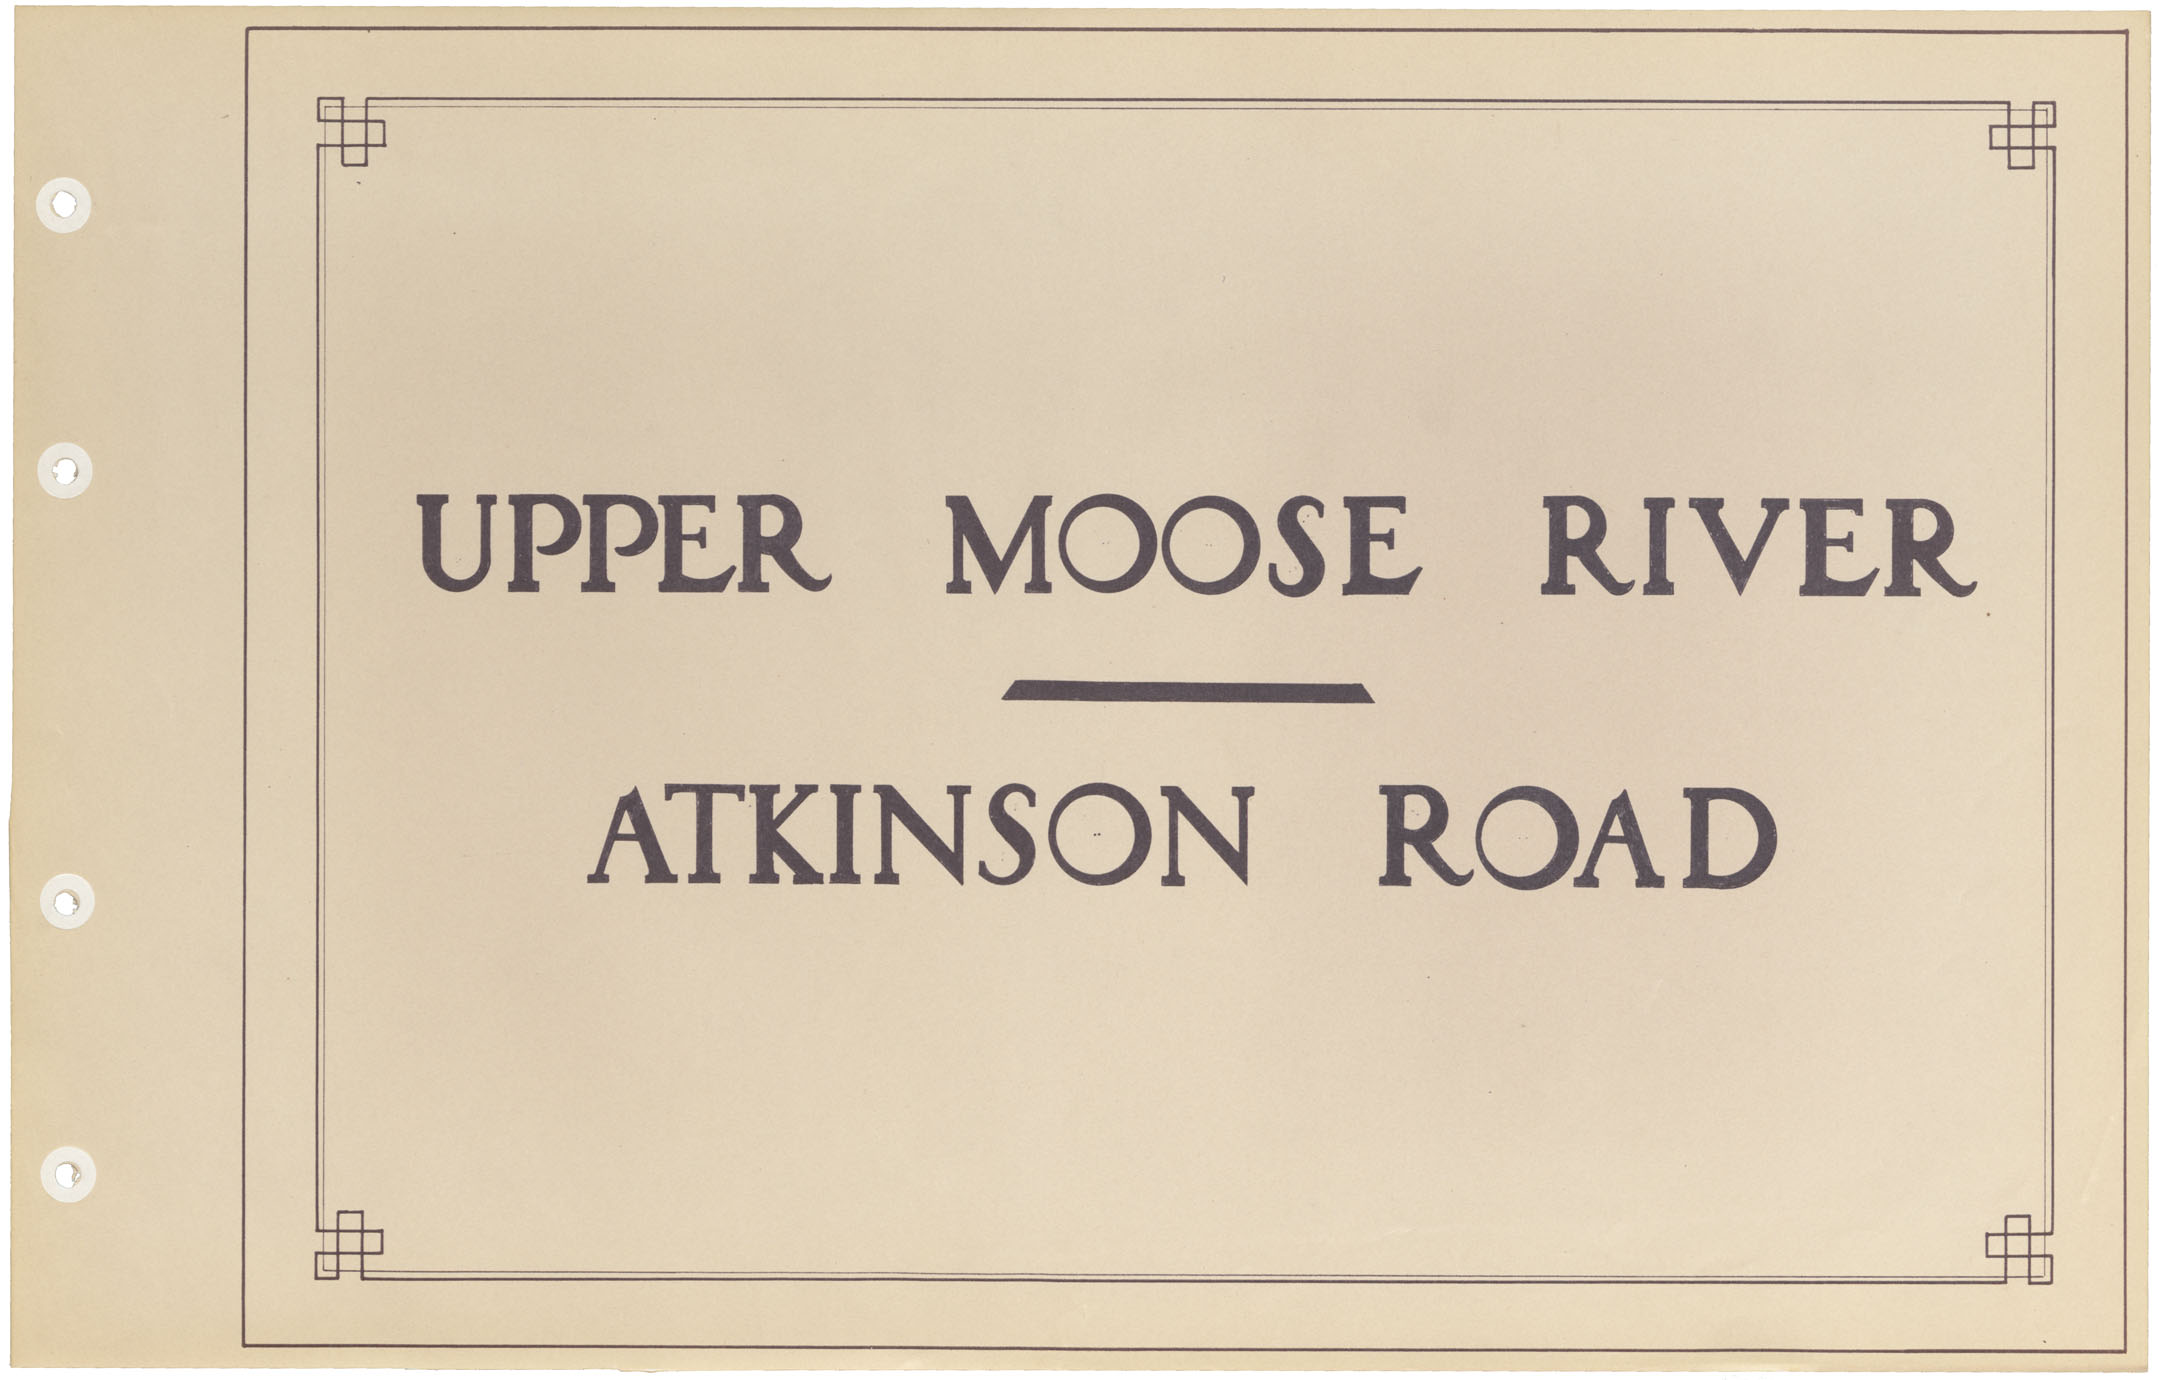 Upper Moose River - Atkinson Road